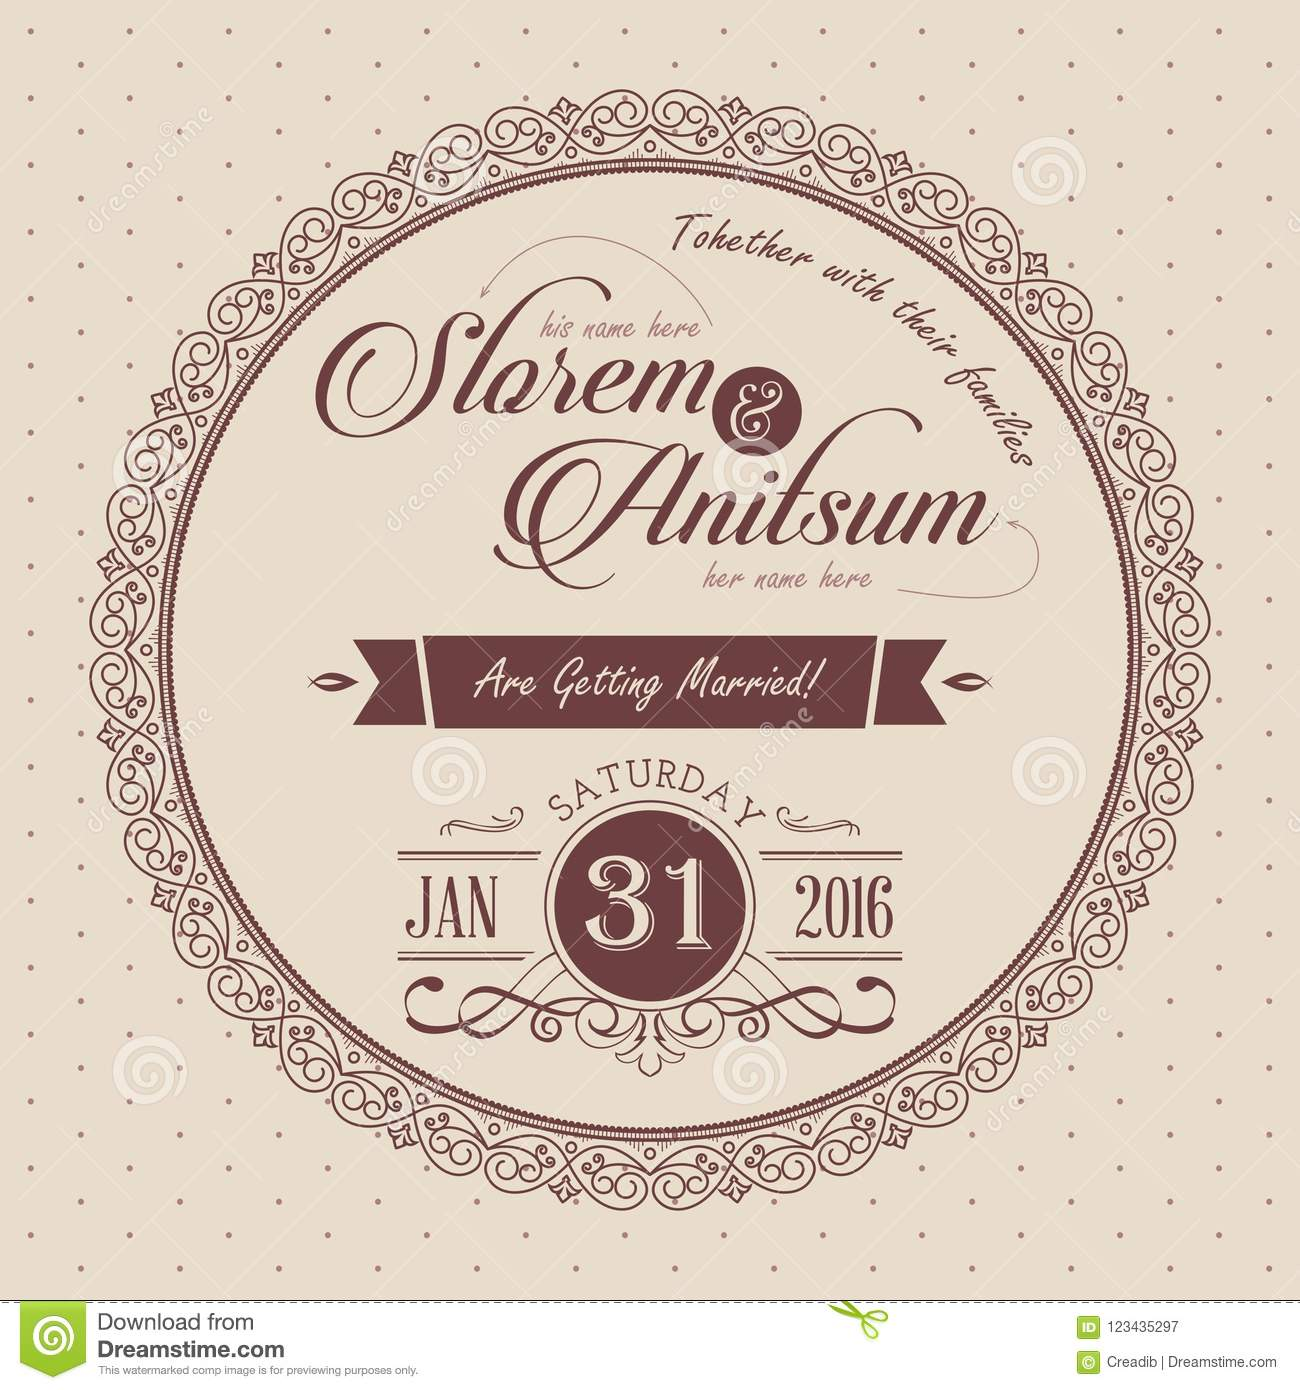 wedding invitation card and save the date card templates with floral decoration hand drawn